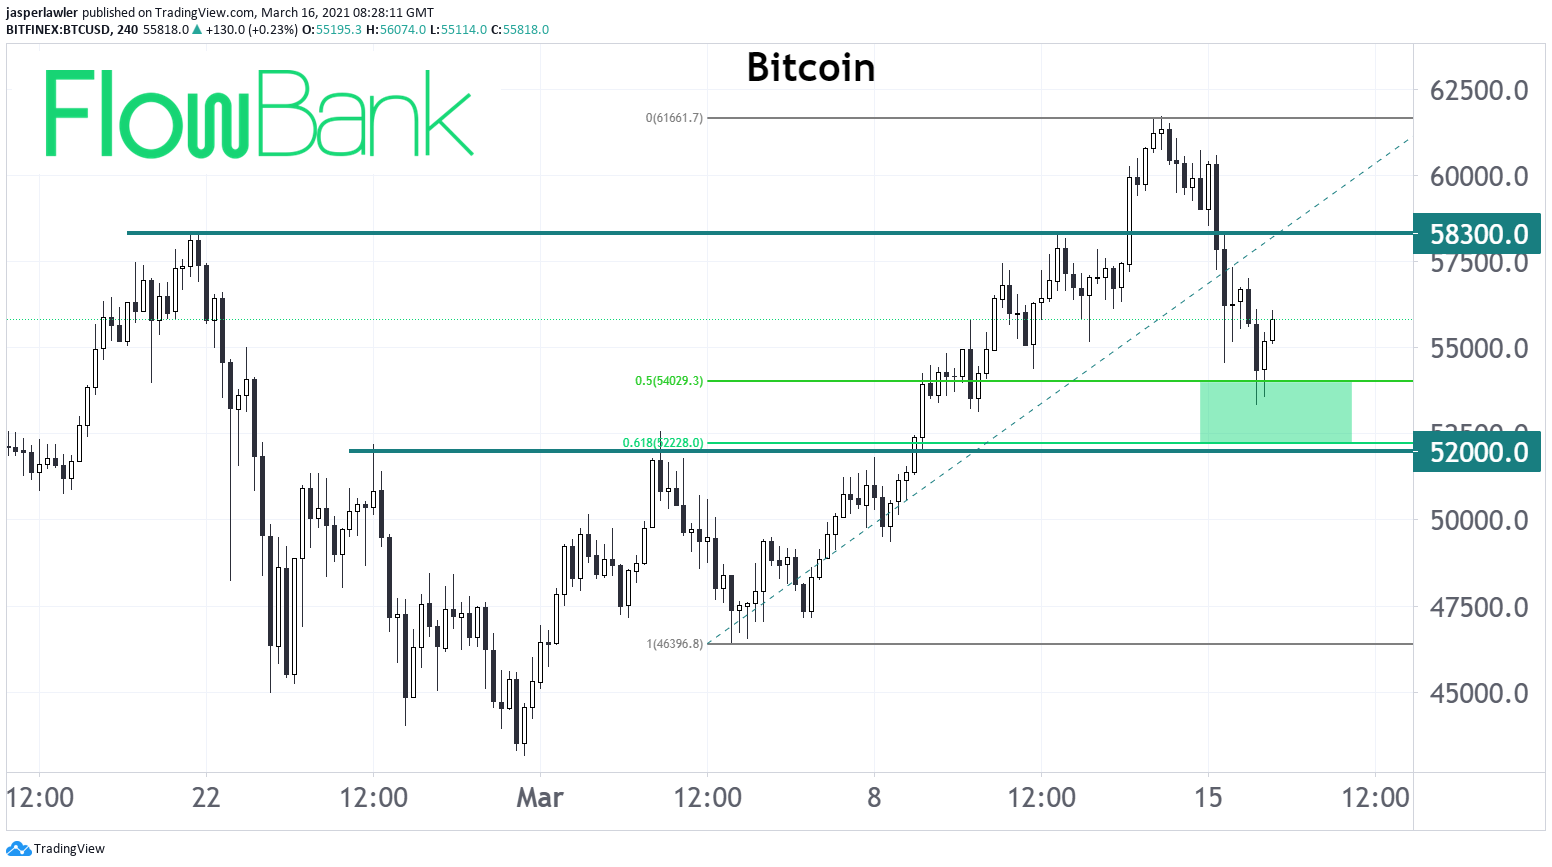 Bitcoin rebounds off 50% retracement of March 5 - 14 rally